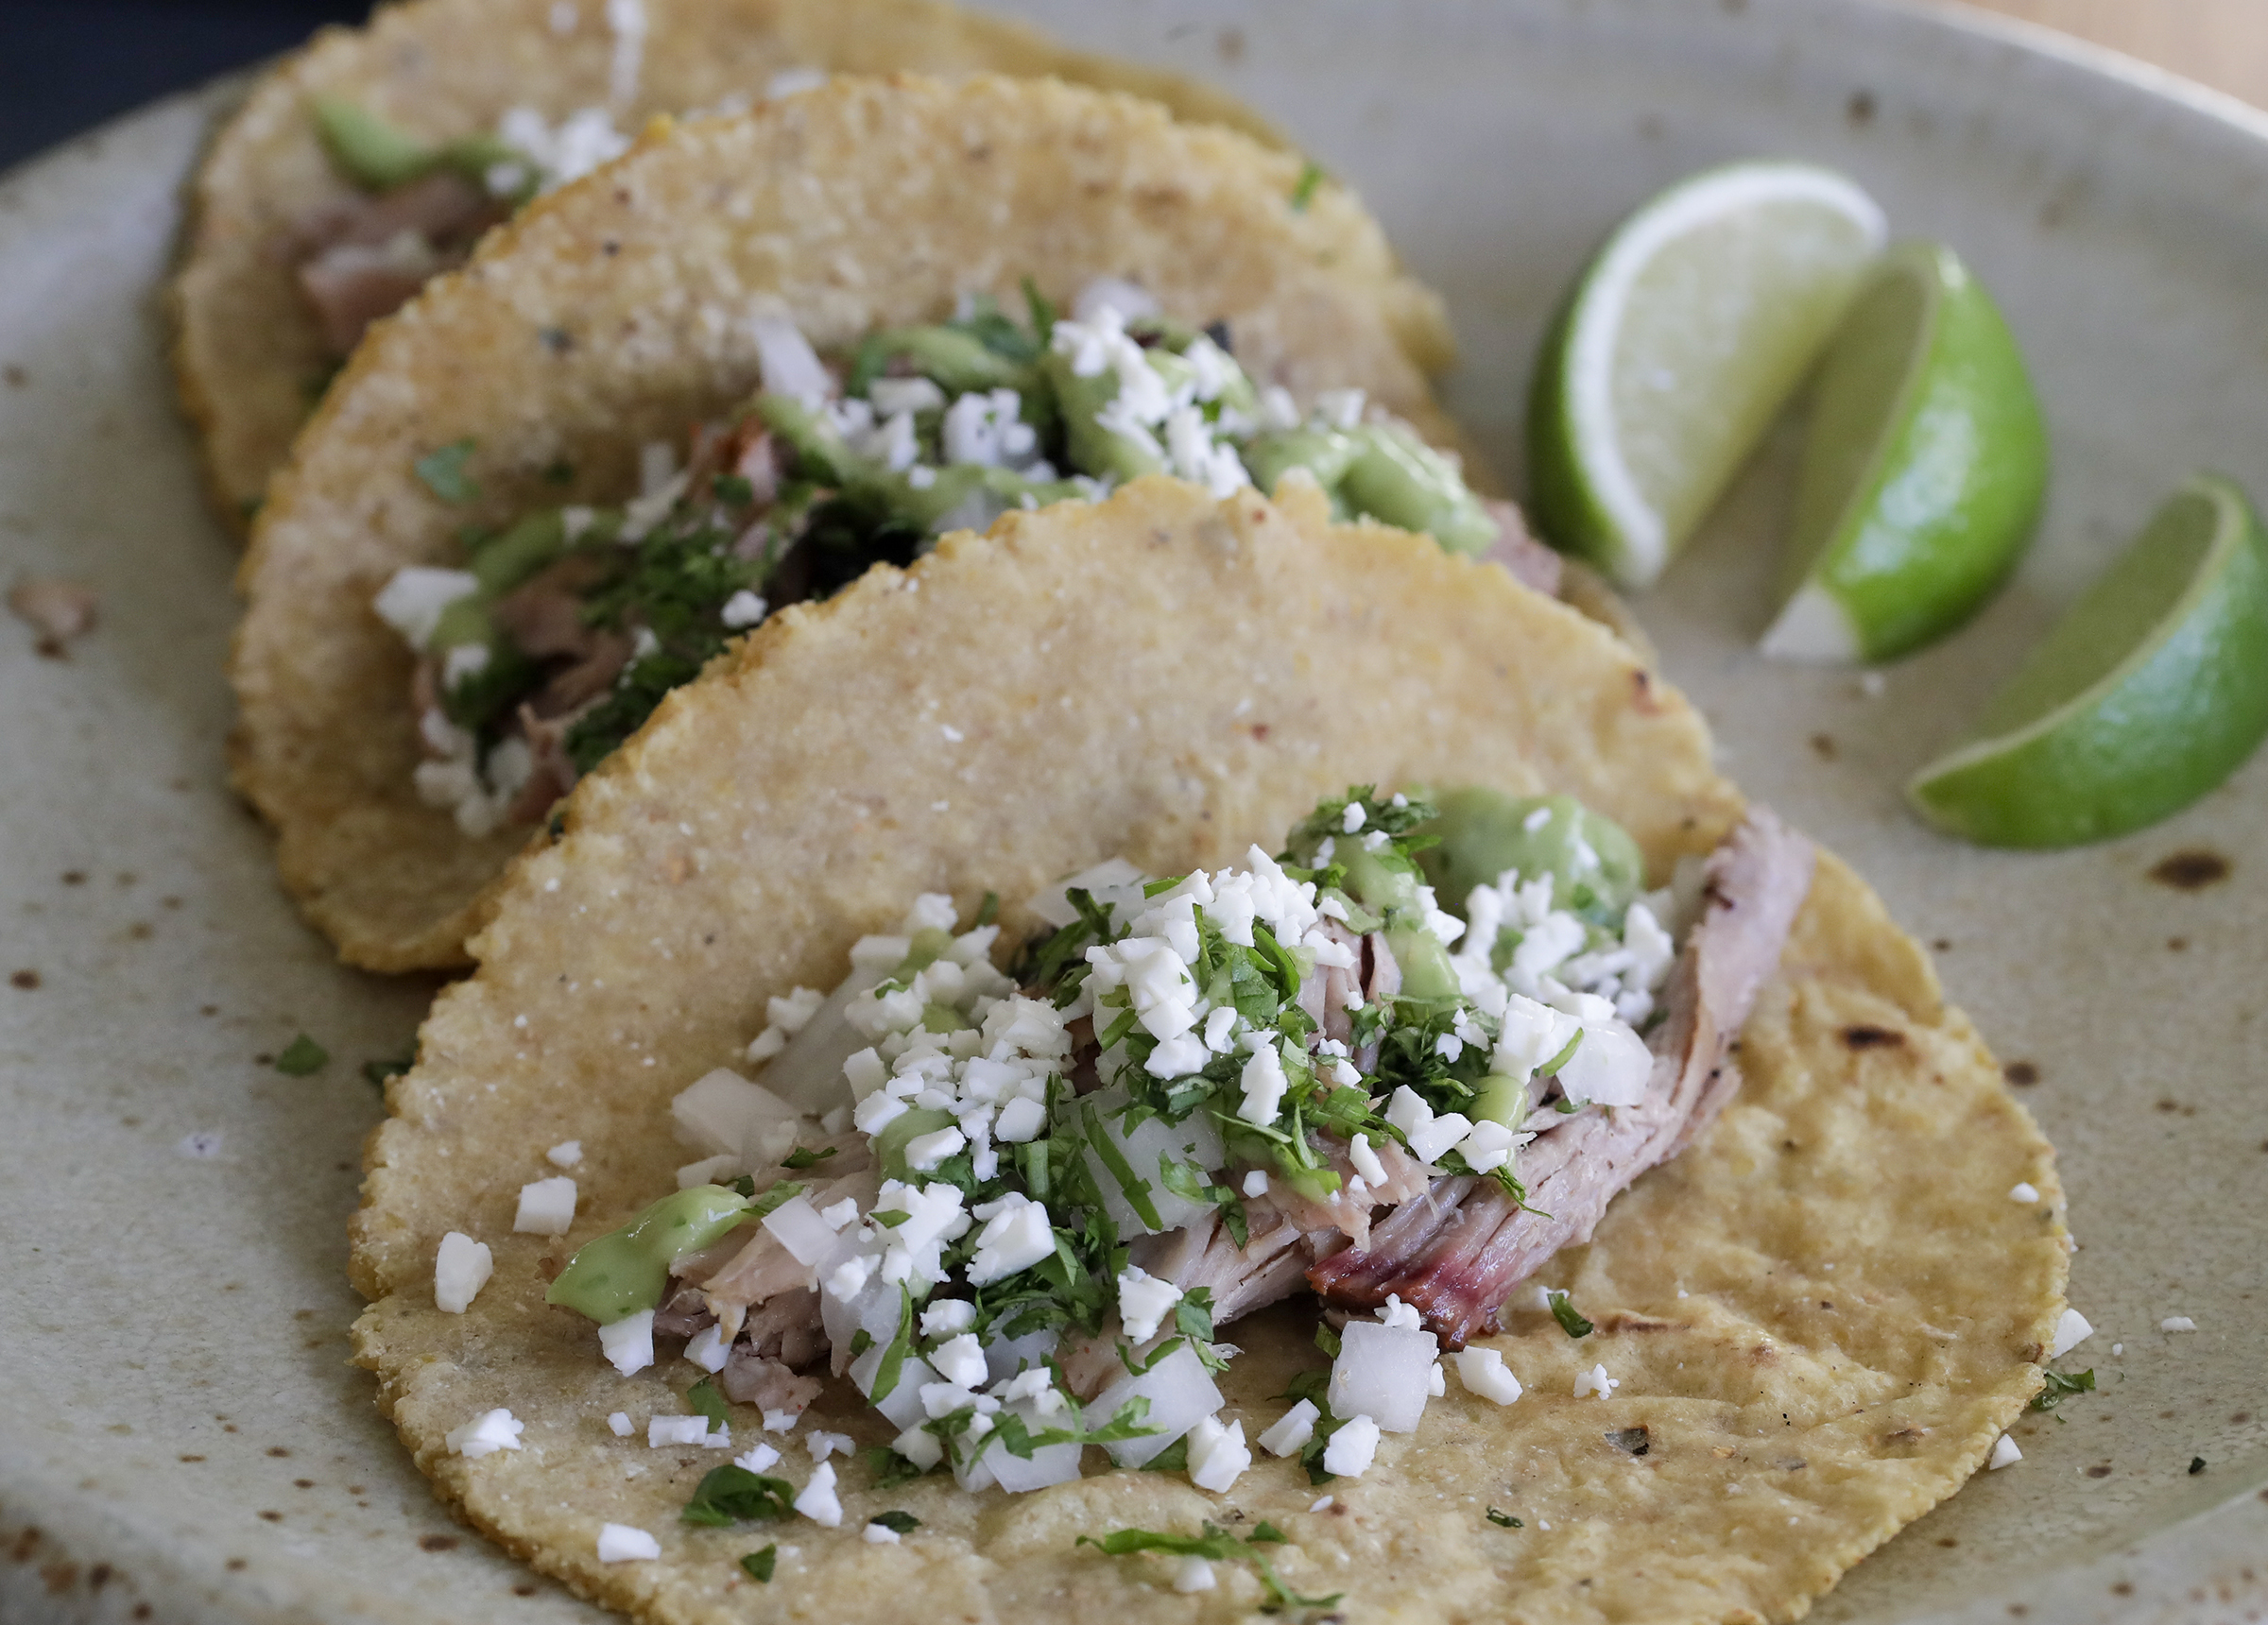 Carnitas (marinated smoked pork) taco made by Scott Hanson at Cadence Restaurant in the Fishtown section of Philadelphia on Monday, March 15, 2021. Hanson, a Texas barbecue pit master is opening a pop-up with a Tex-Mex twist at Cadence Restaurant.